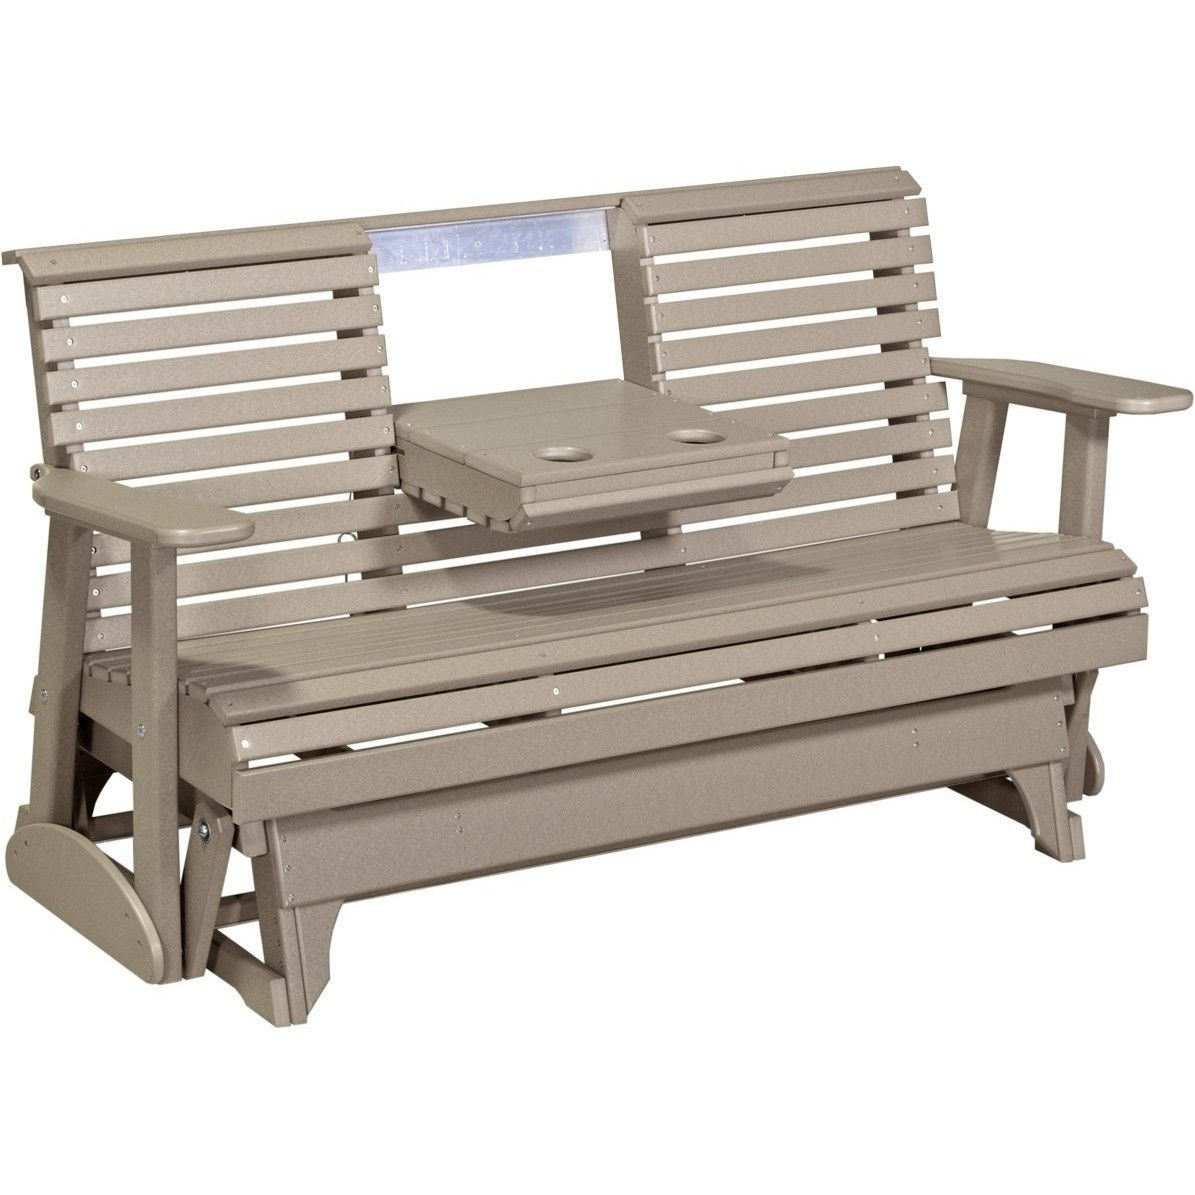 Luxcraft 5 Rollback Recycled Plastic Patio Glider With Flip Down Center Console Lead Time To Ship 14 Weeks